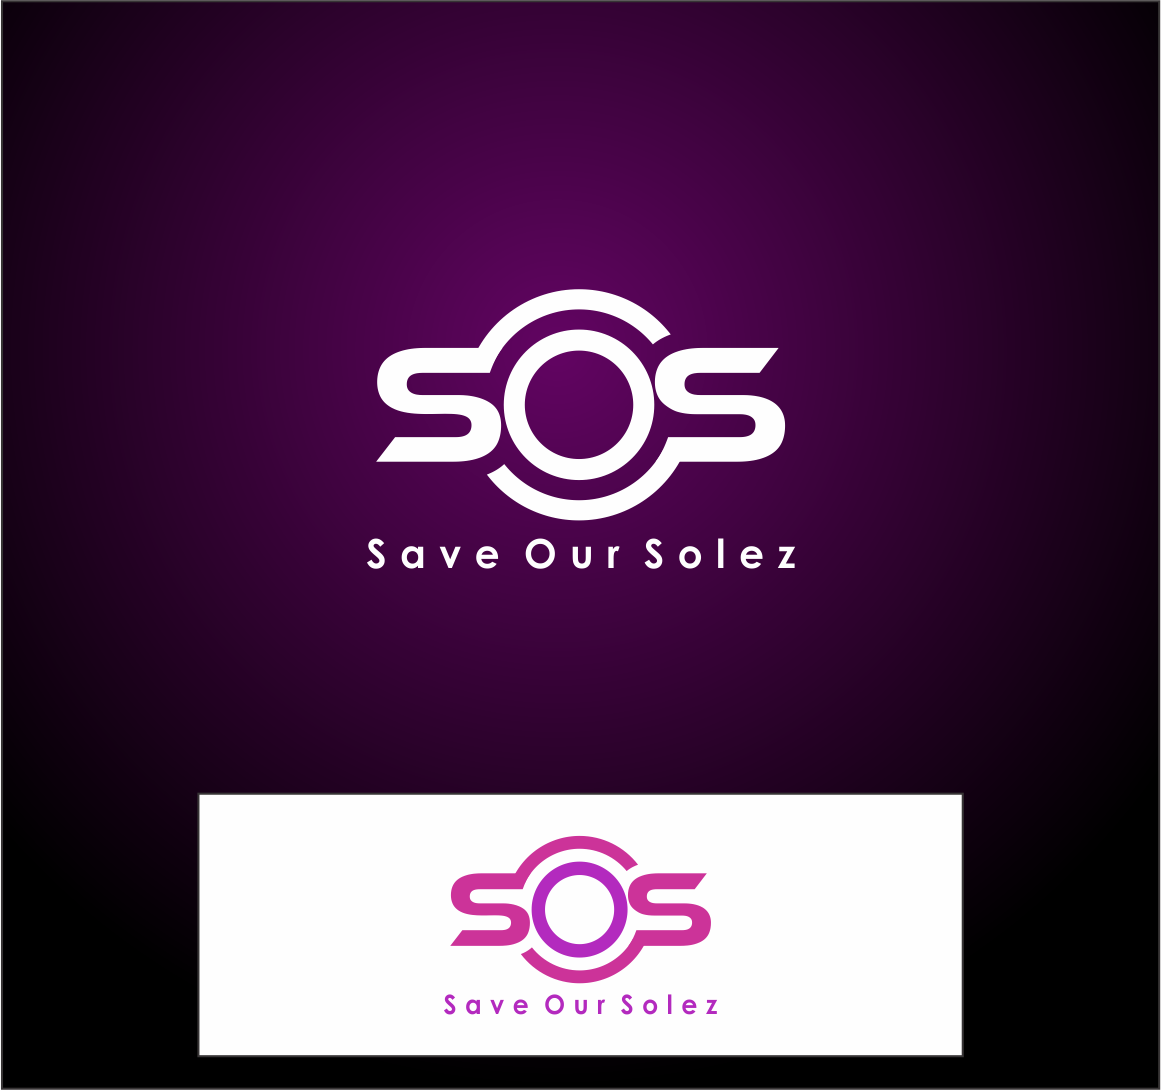 Logo Design by haidu - Entry No. 7 in the Logo Design Contest Captivating Logo Design for Save Our Solez.